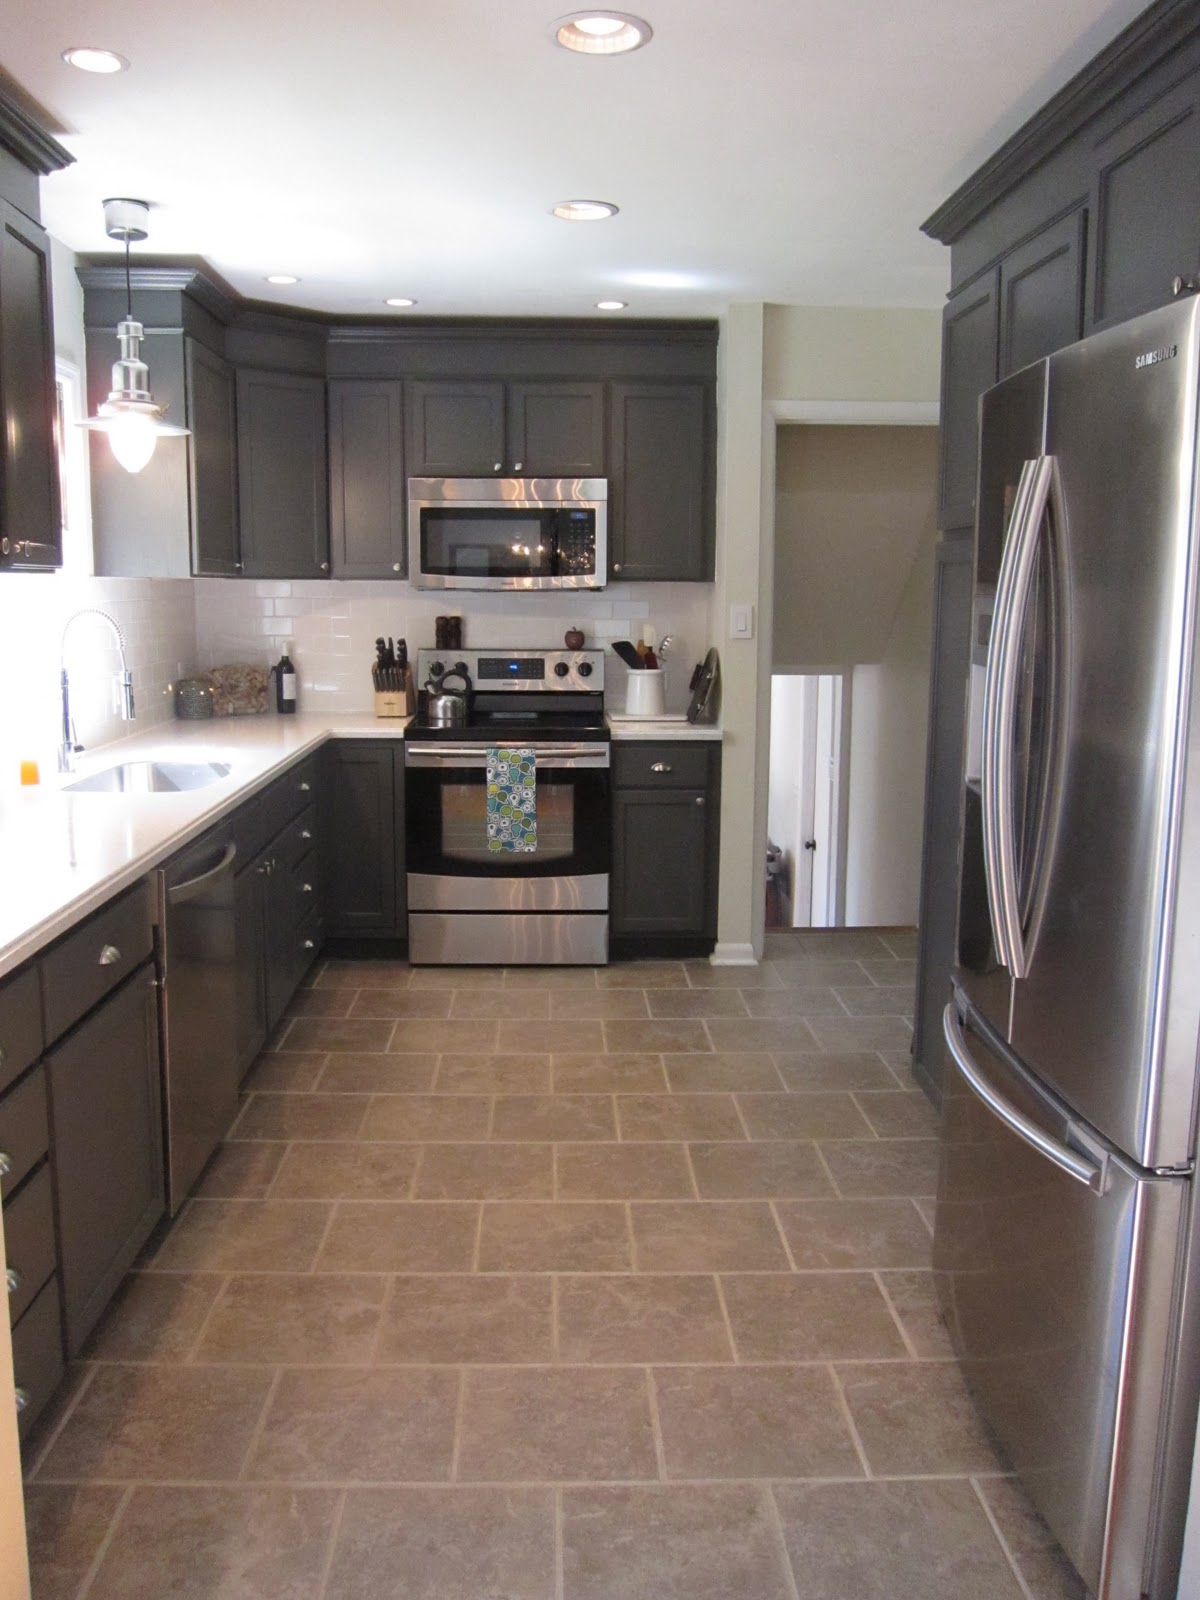 White Cabinets And Grey Countertops Remodelaholic Kitchen Redo With Dark Gray Cabinets